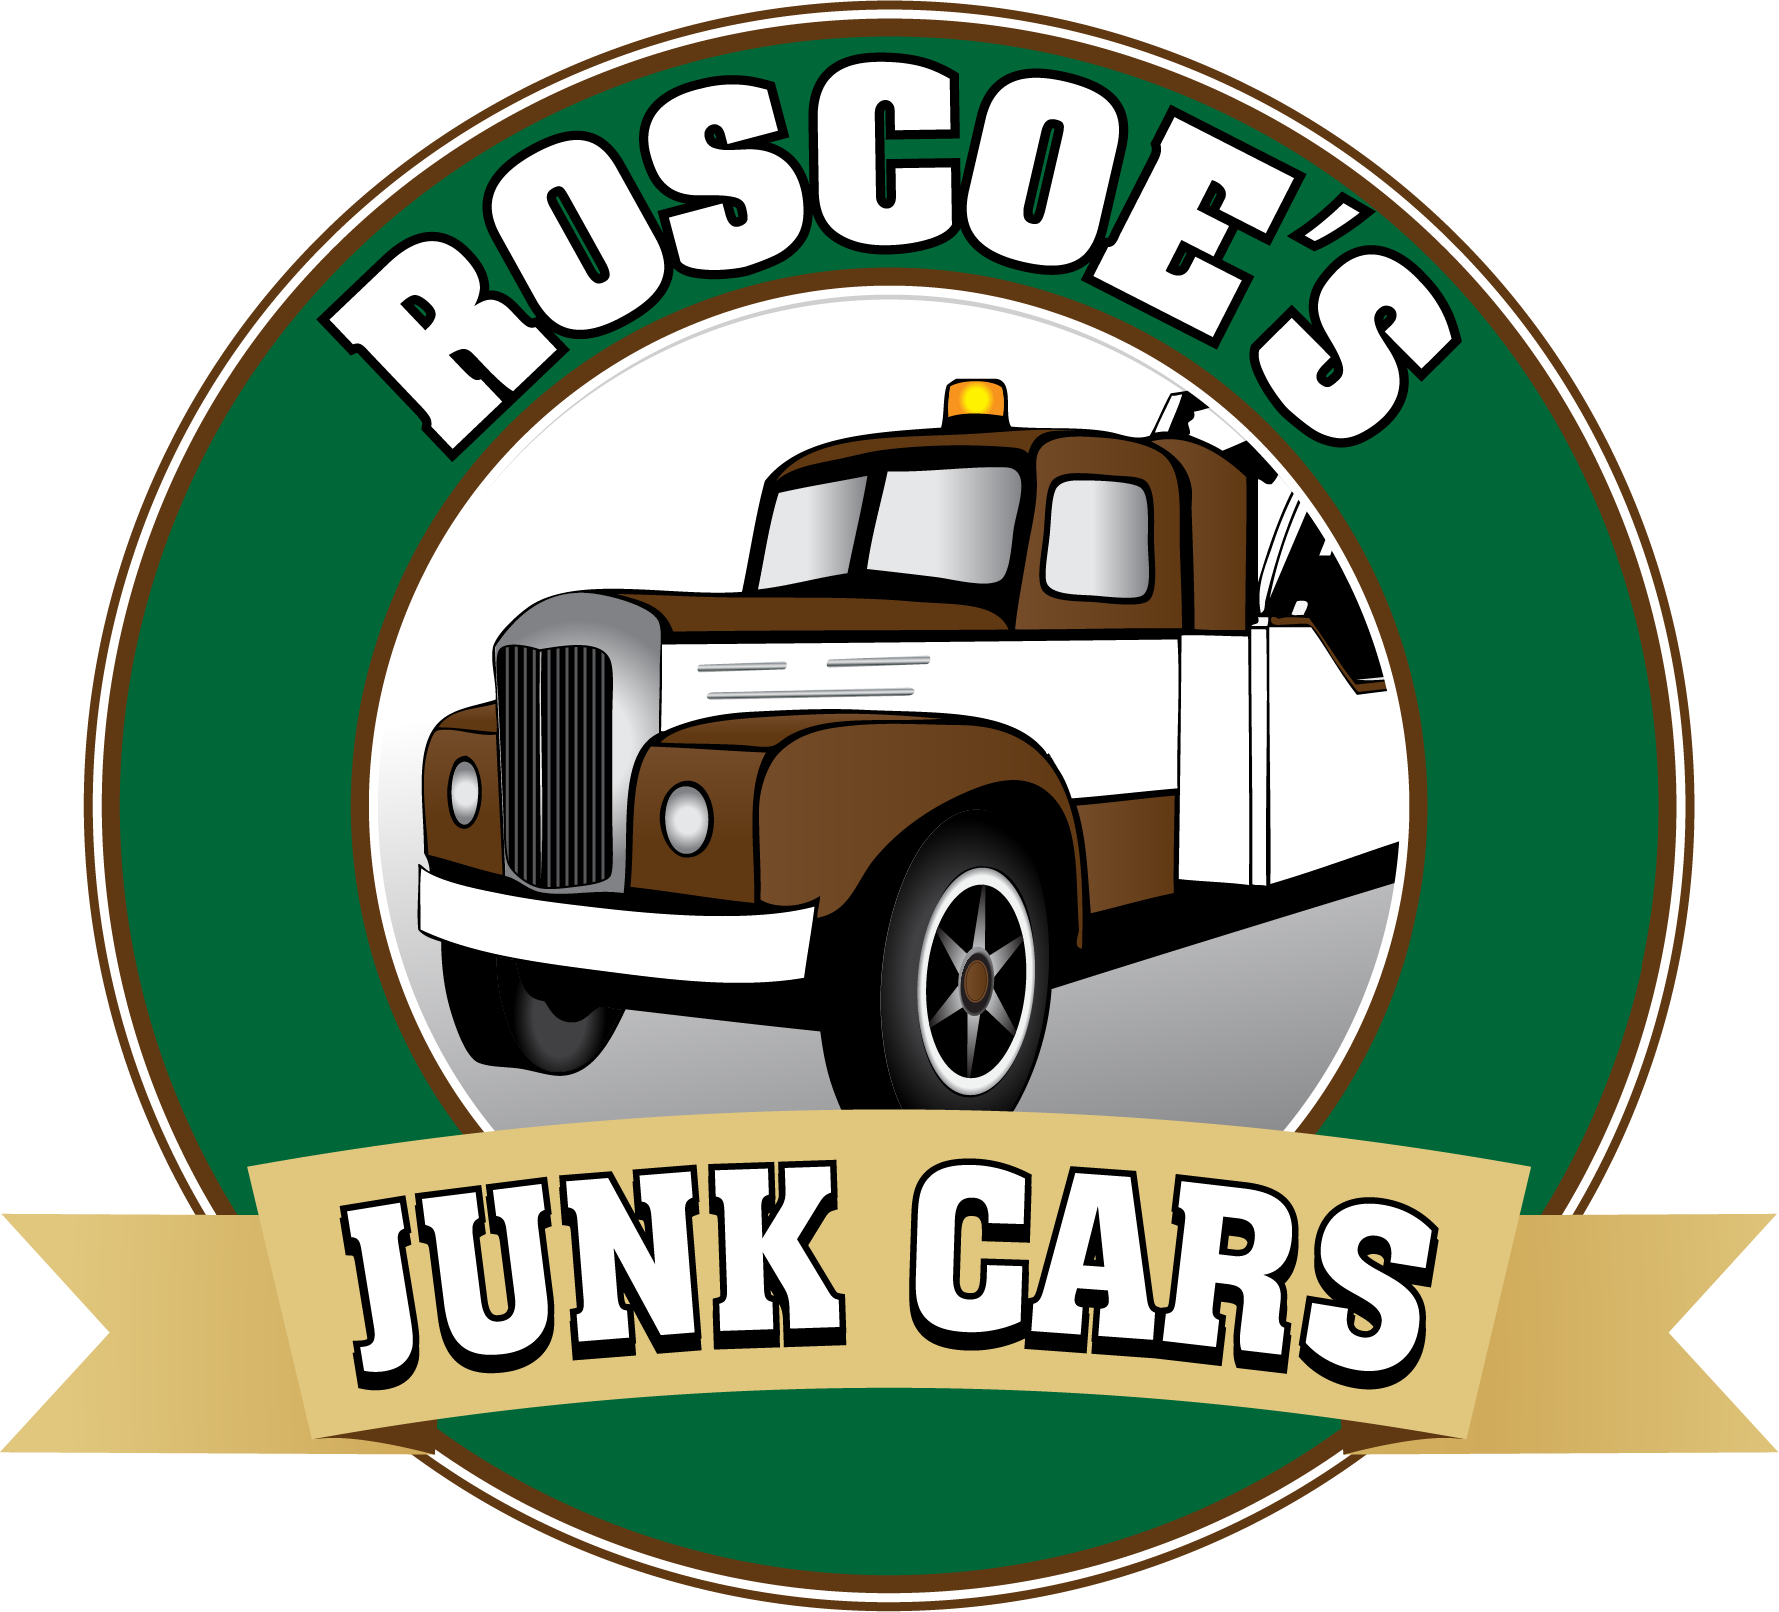 Cash For Junk Cars & Immediate Junk Car Removal